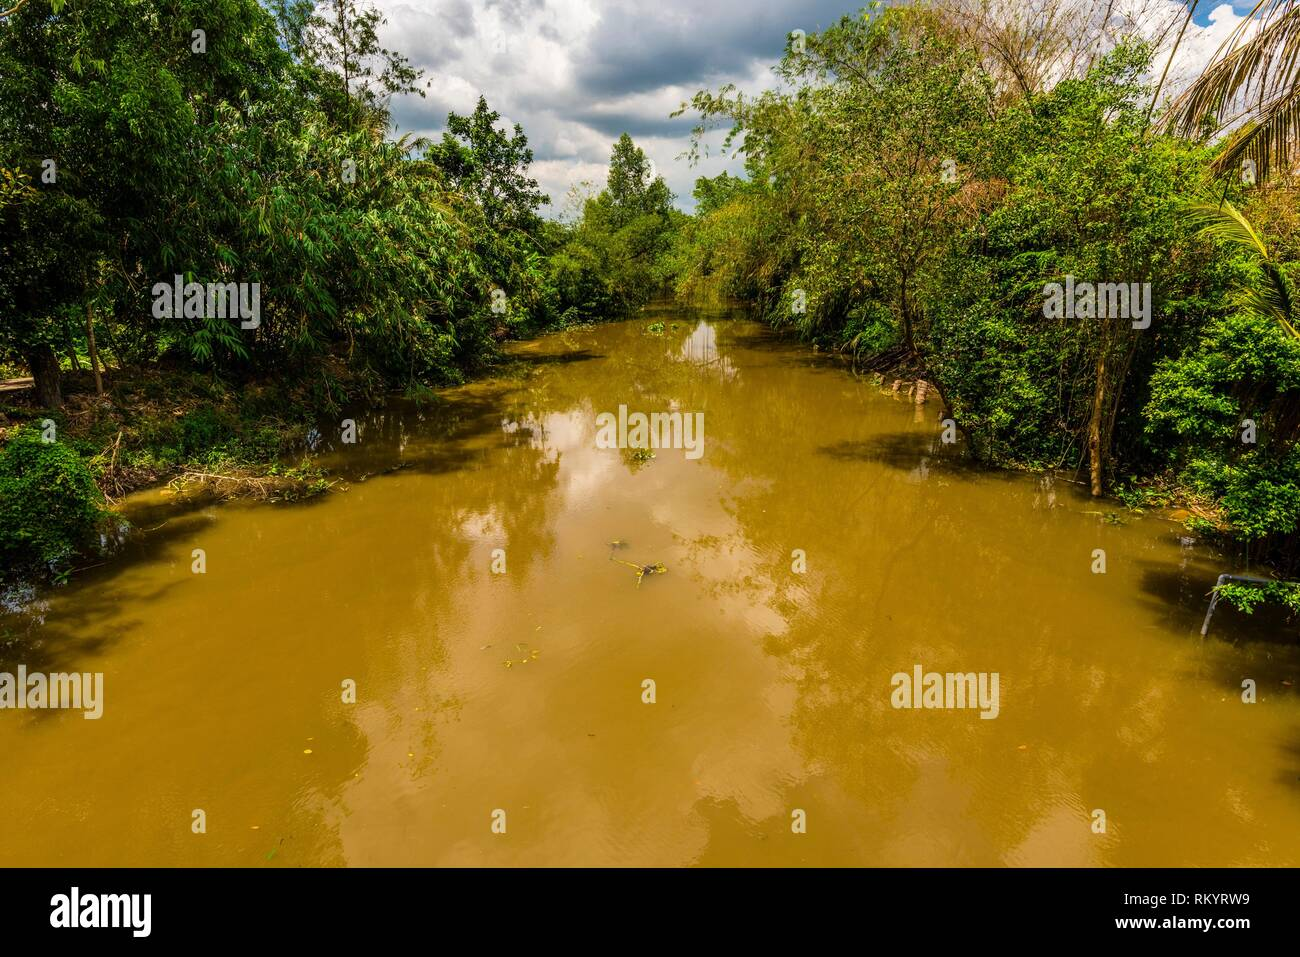 Backwaters, Cai Lay, Mekong Delta, Vietnam. - Stock Image